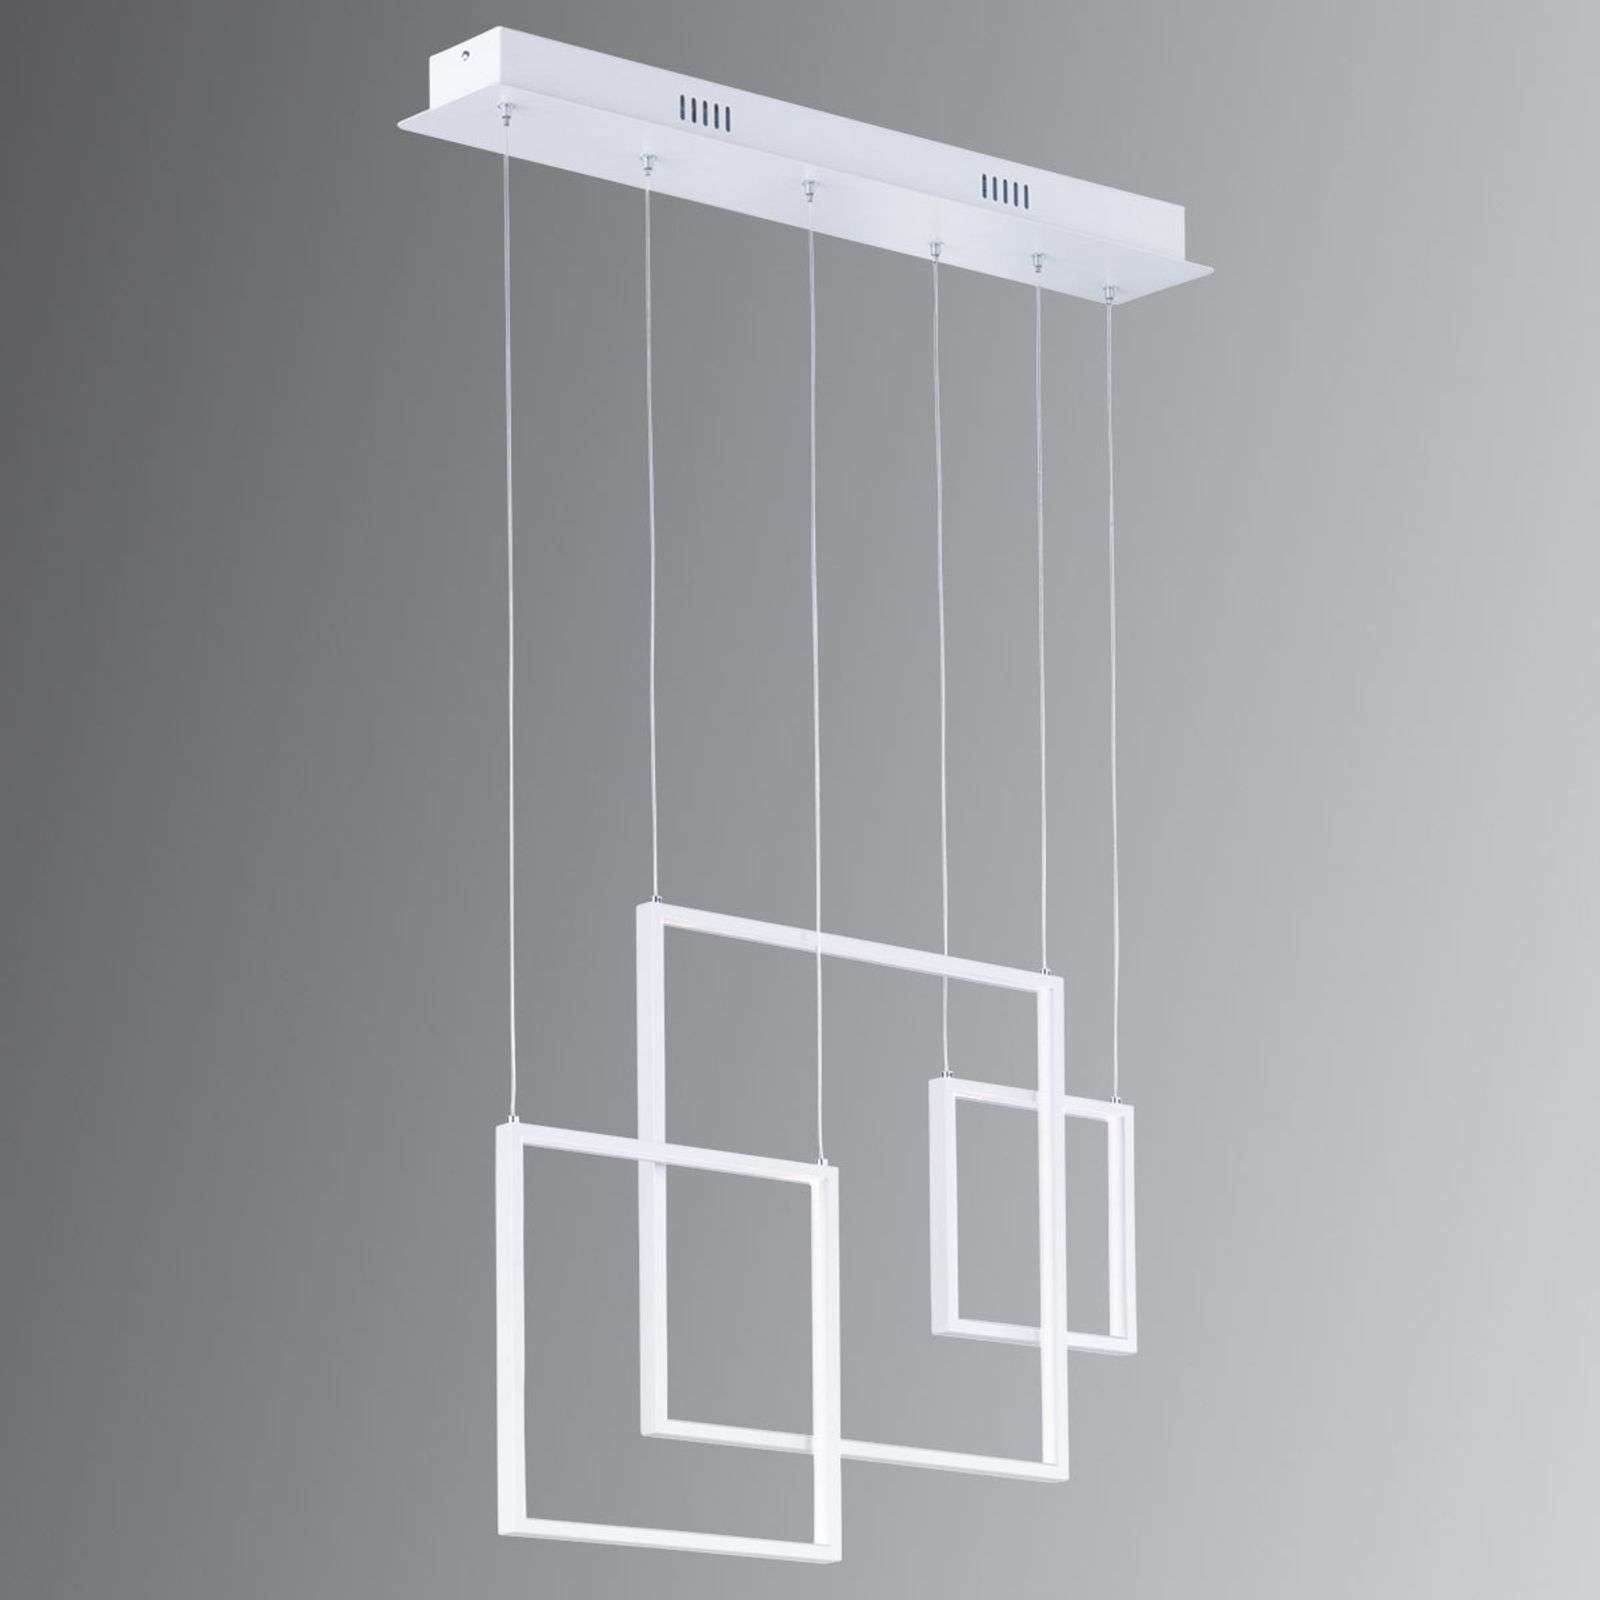 LED hanglamp Tucson met switch dimfunctie